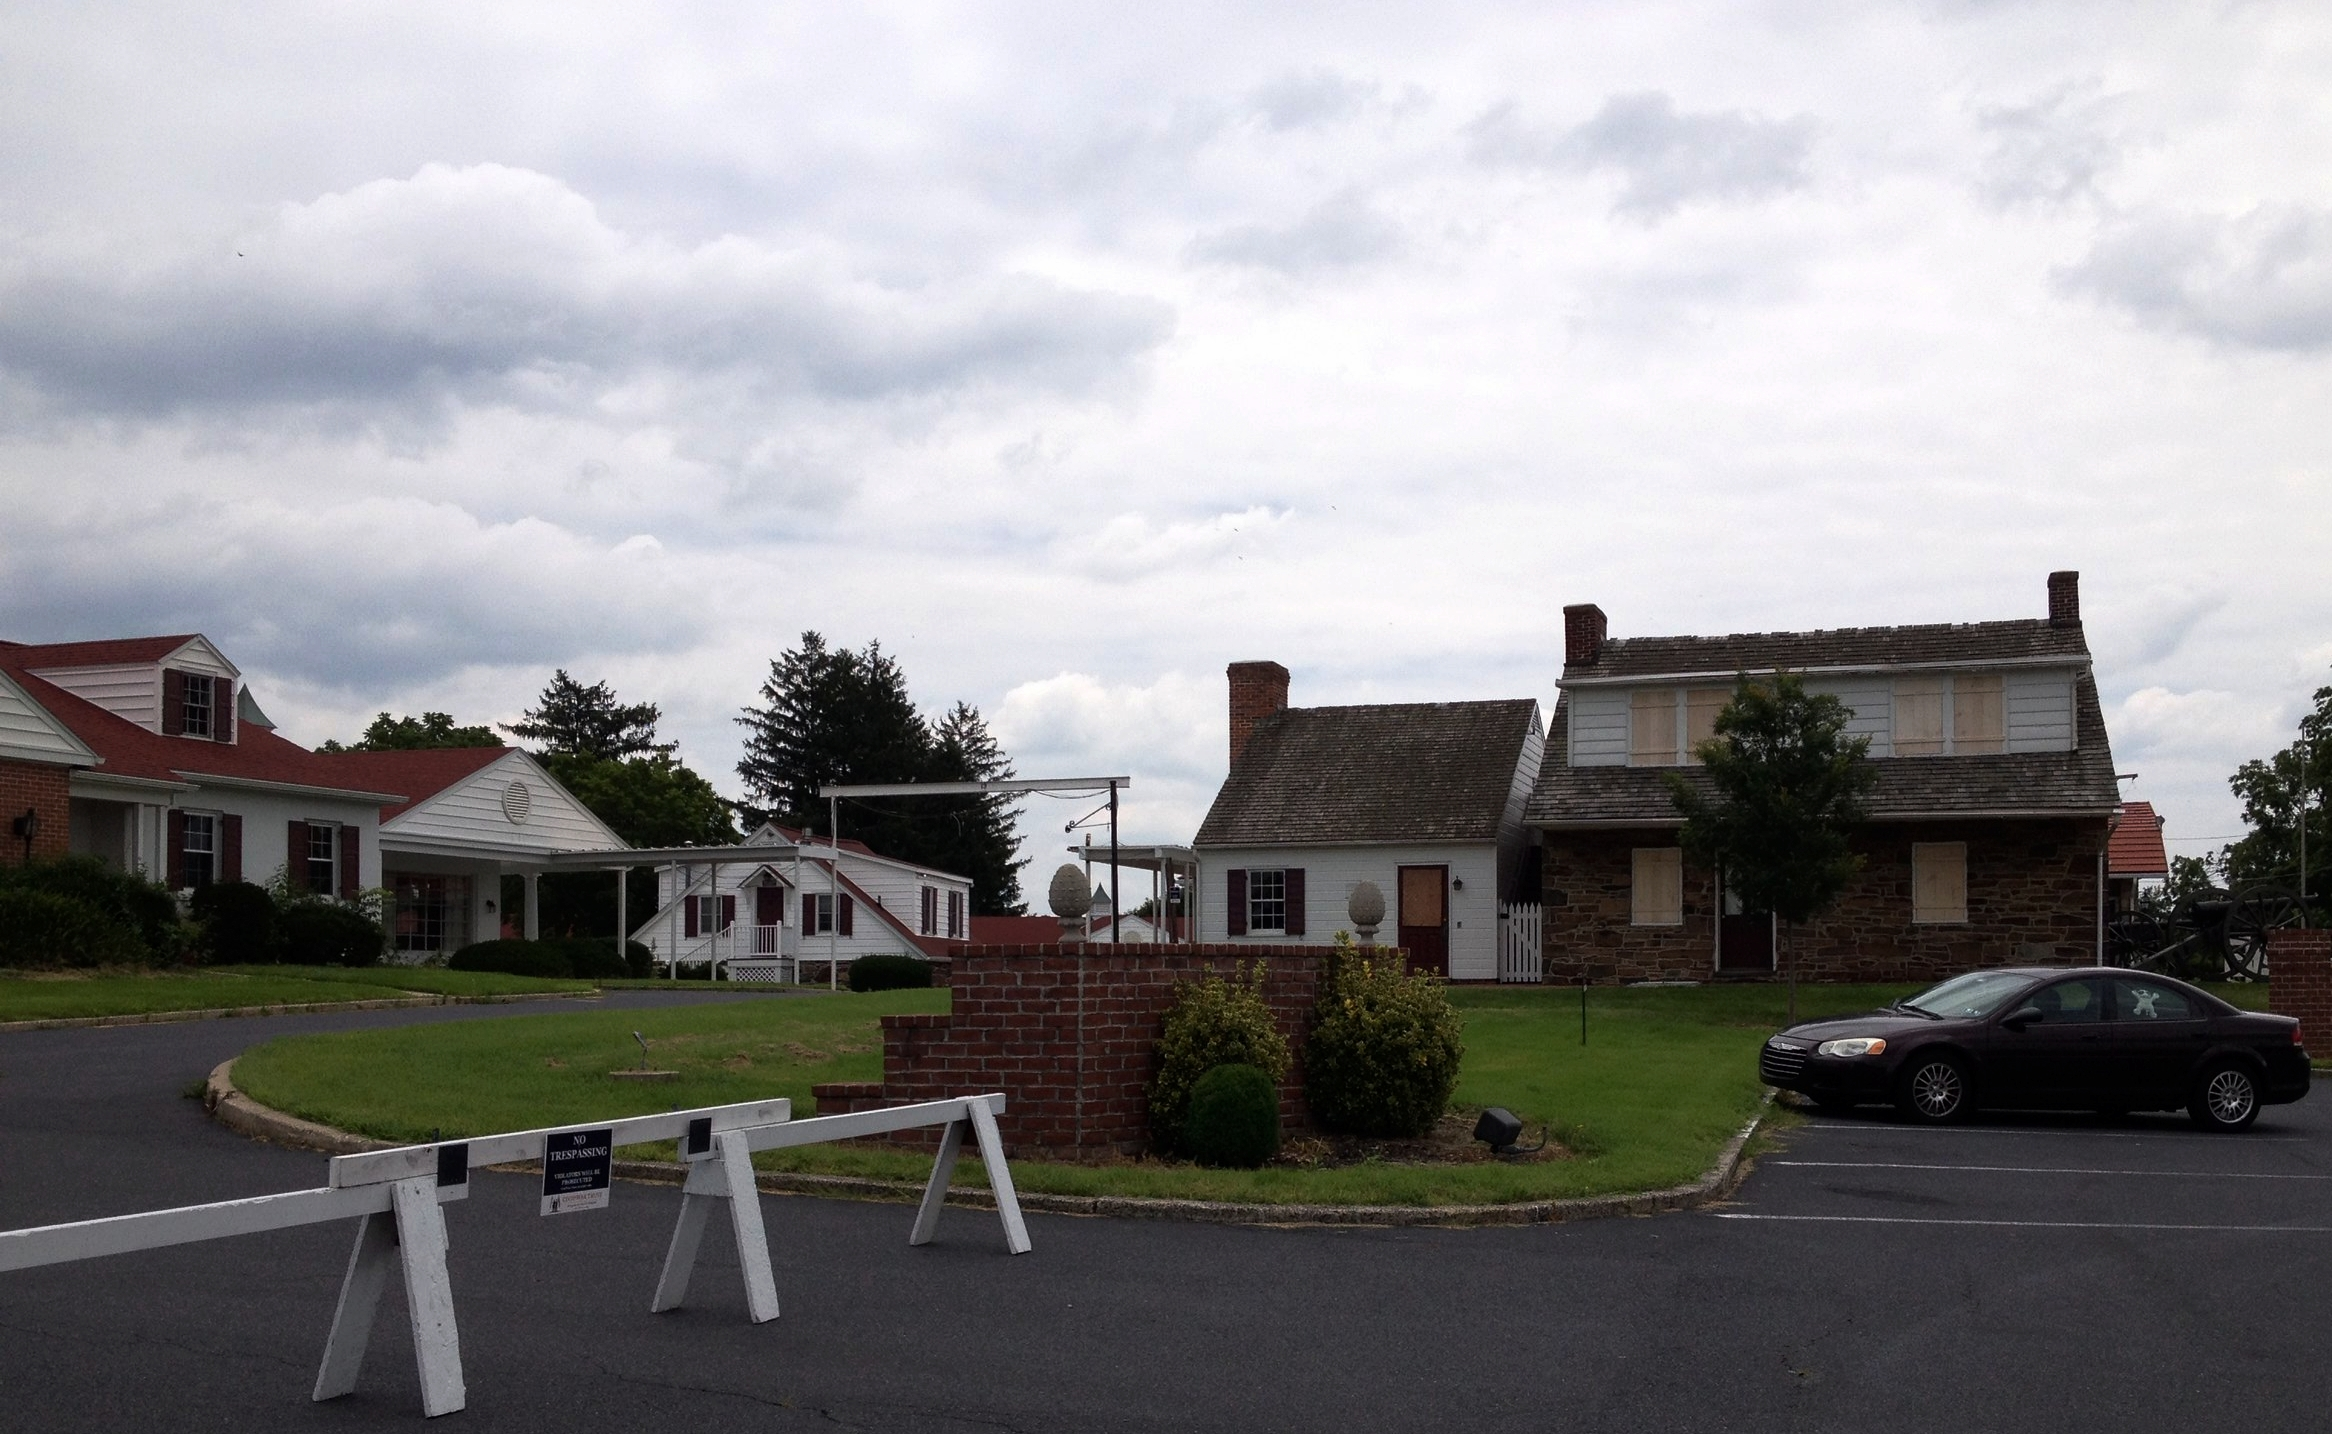 Mrs. THompson's House/General Lee's Headquarters on the edge of Gettysburg